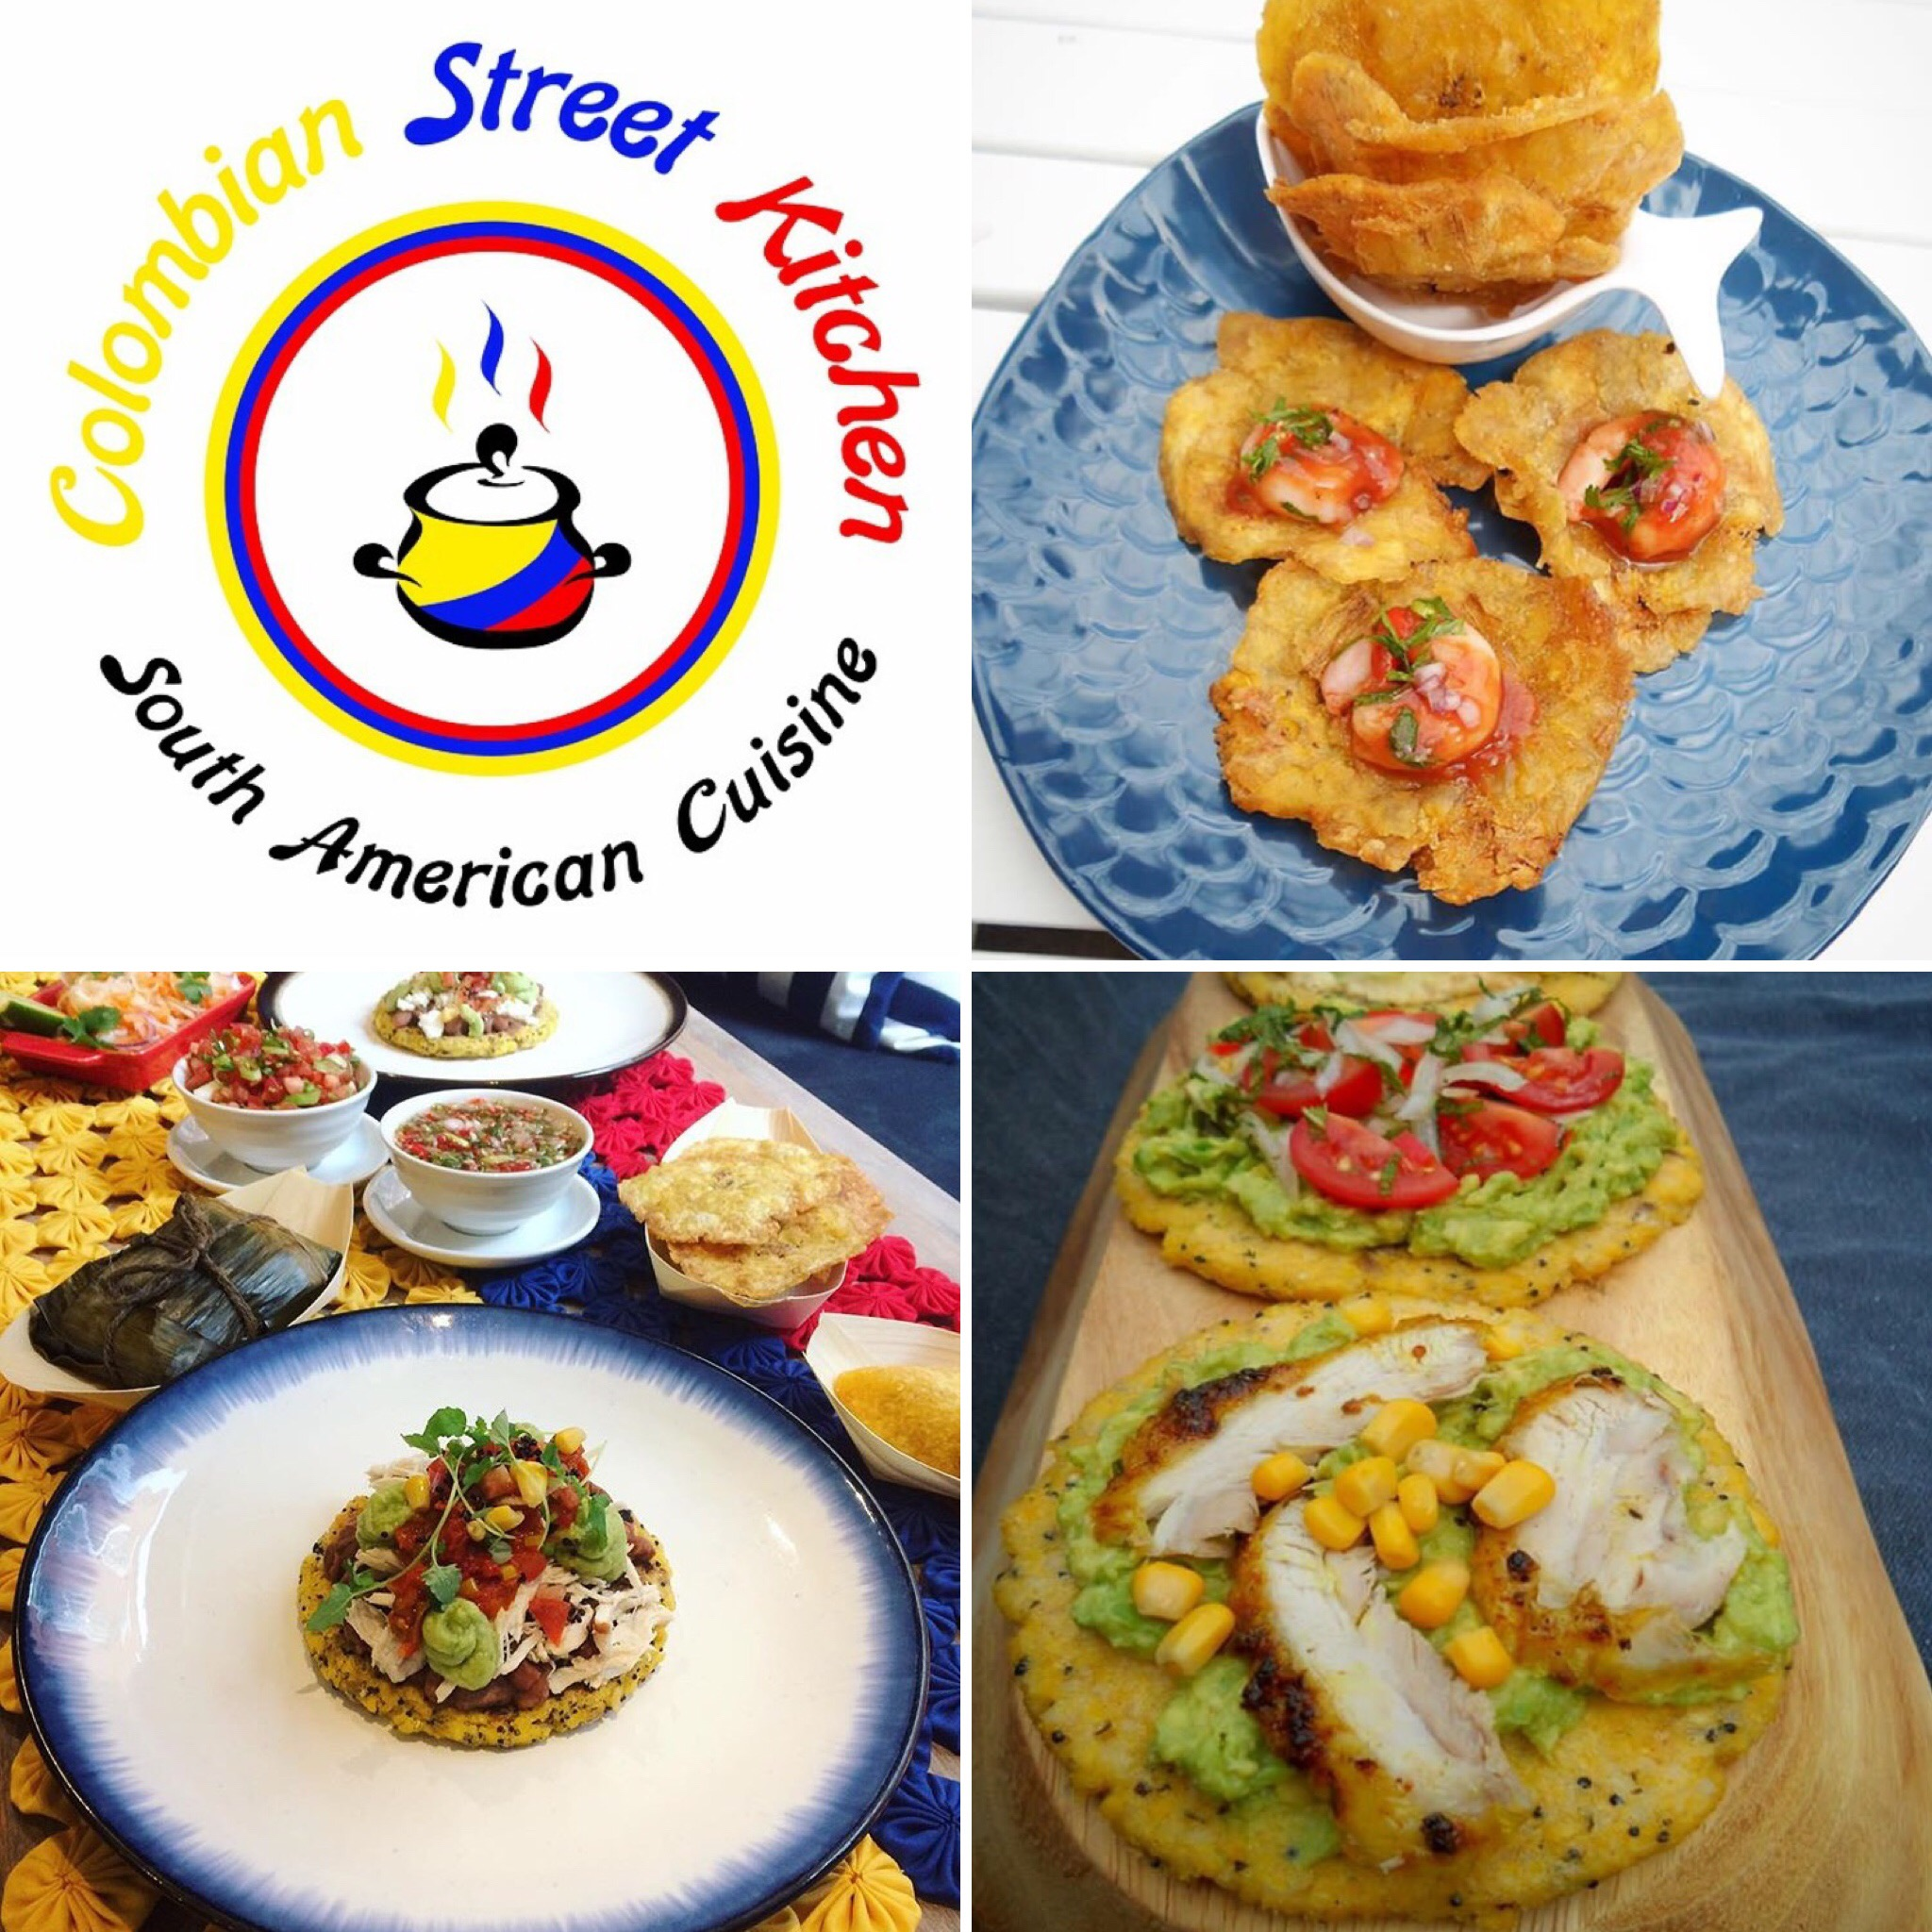 COLOMBIAN STREET KITCHEN - STARTS WEDNESDAY THE 19TH OF JULY